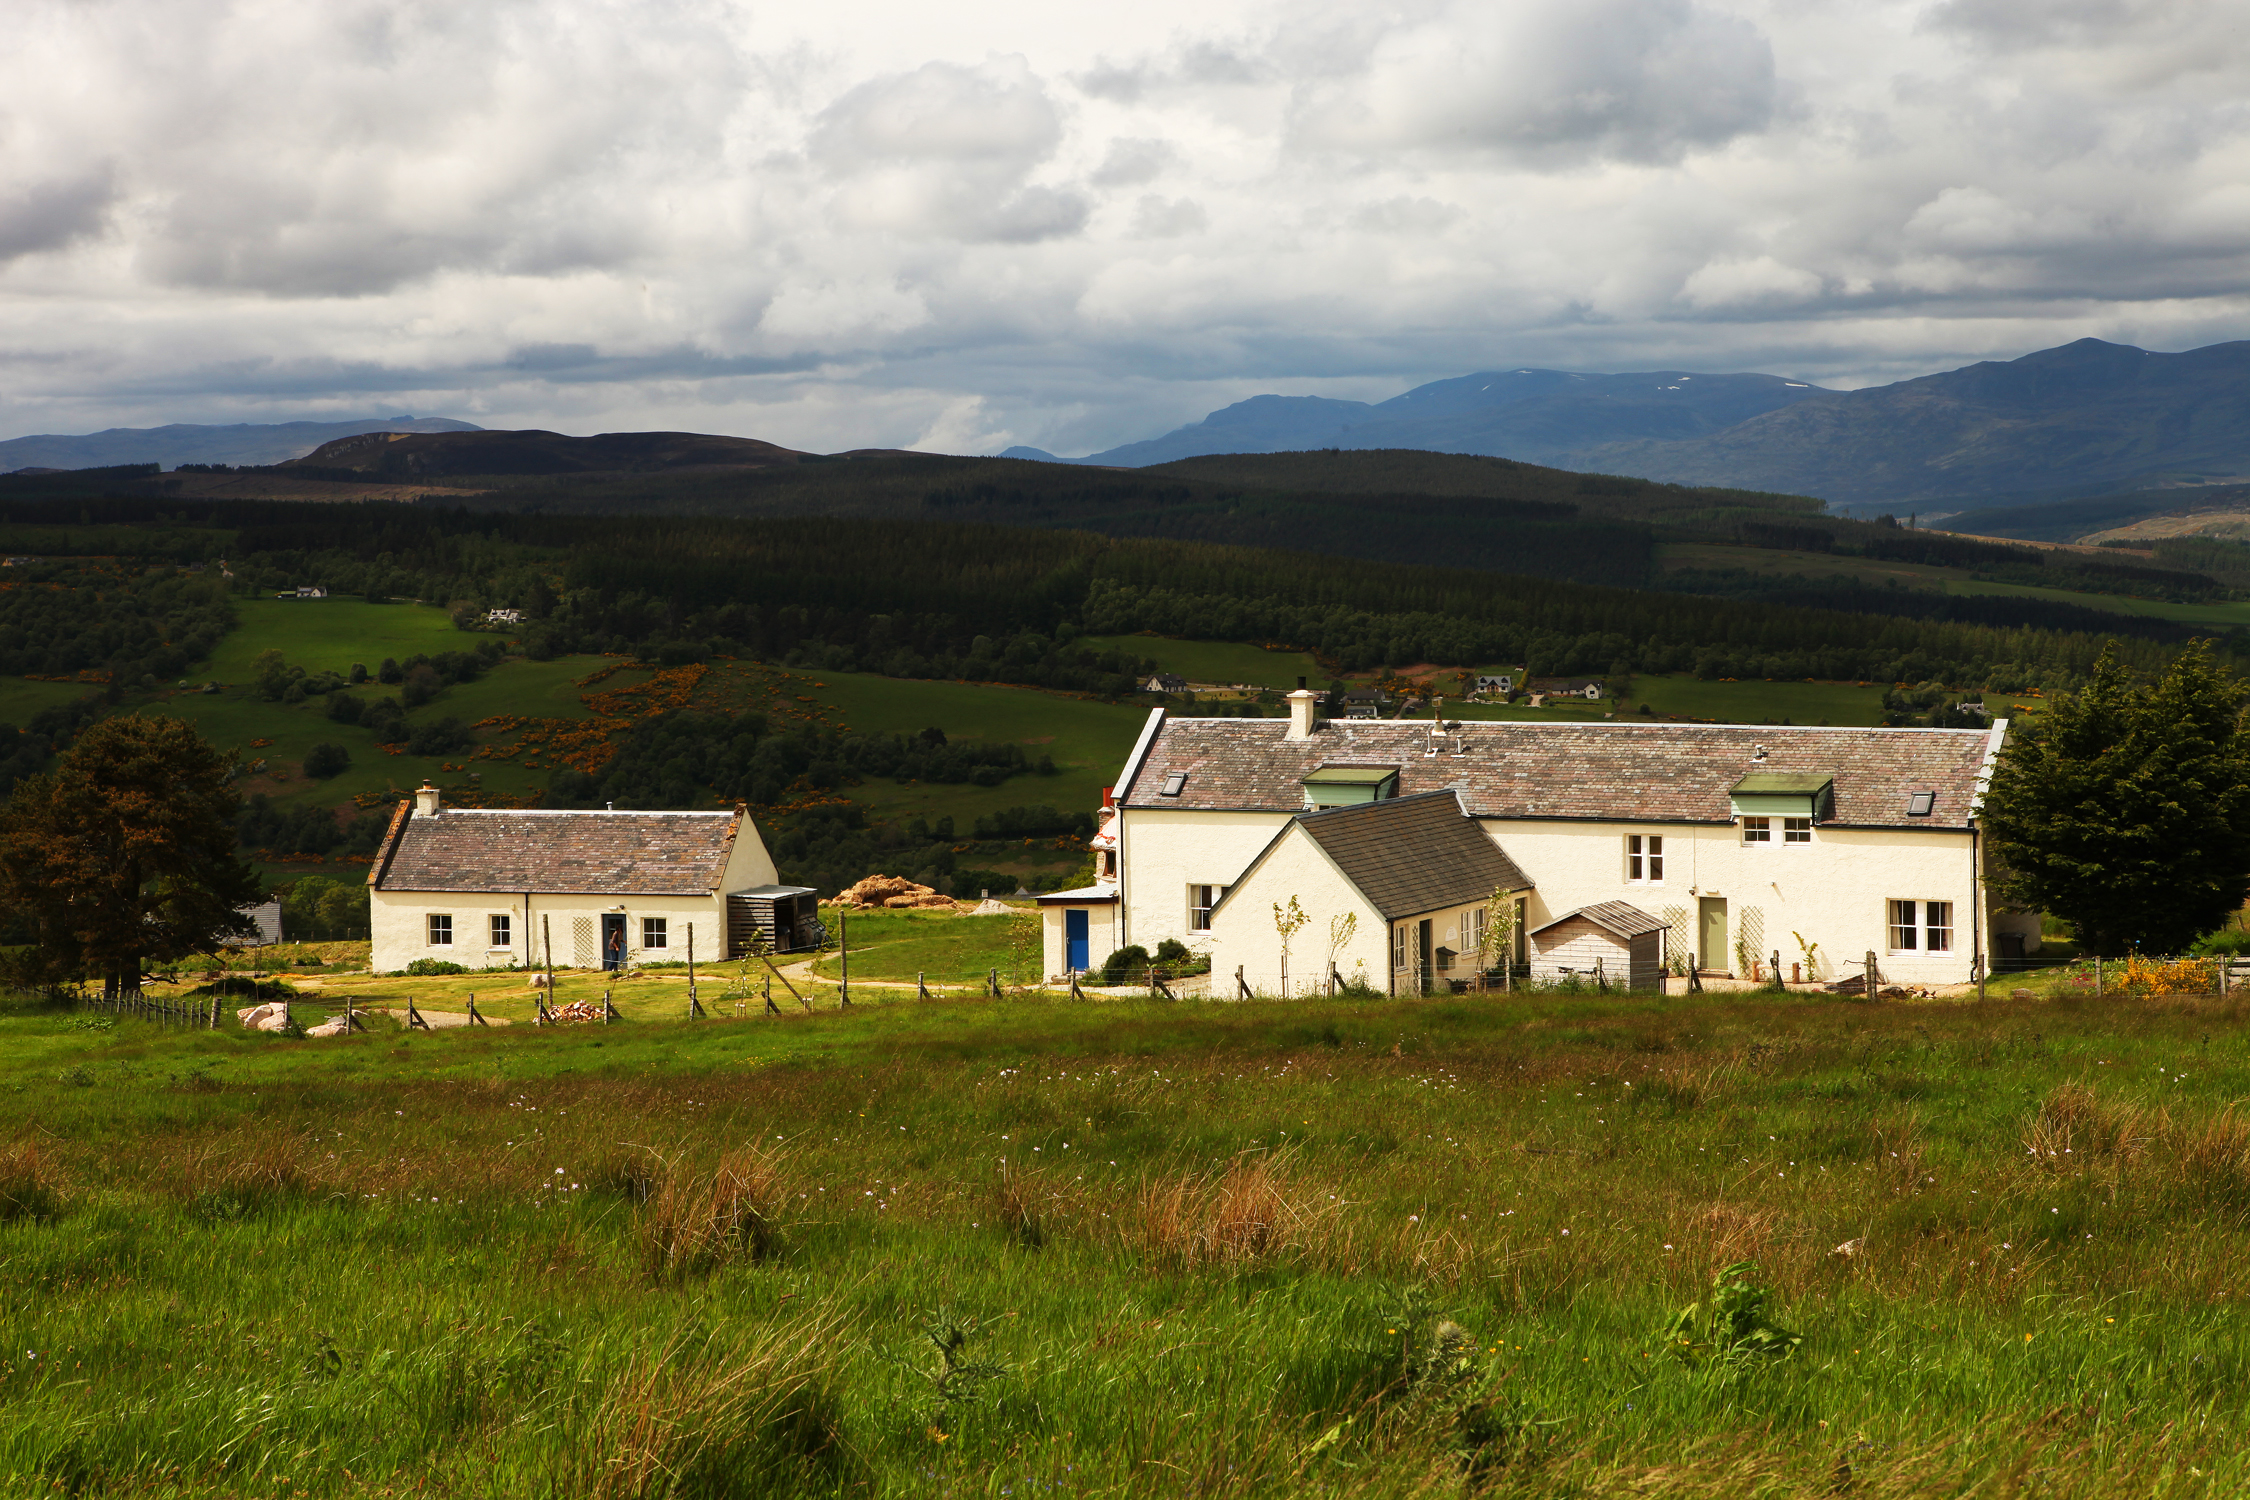 Moniack Mhor, sitting at 1000 feet, commands panoramic views of the local hills and countryside. The converted croft house and barn provides a cosy setting for writing courses and retreats throughout the year. Photographer: Nancy MacDonald